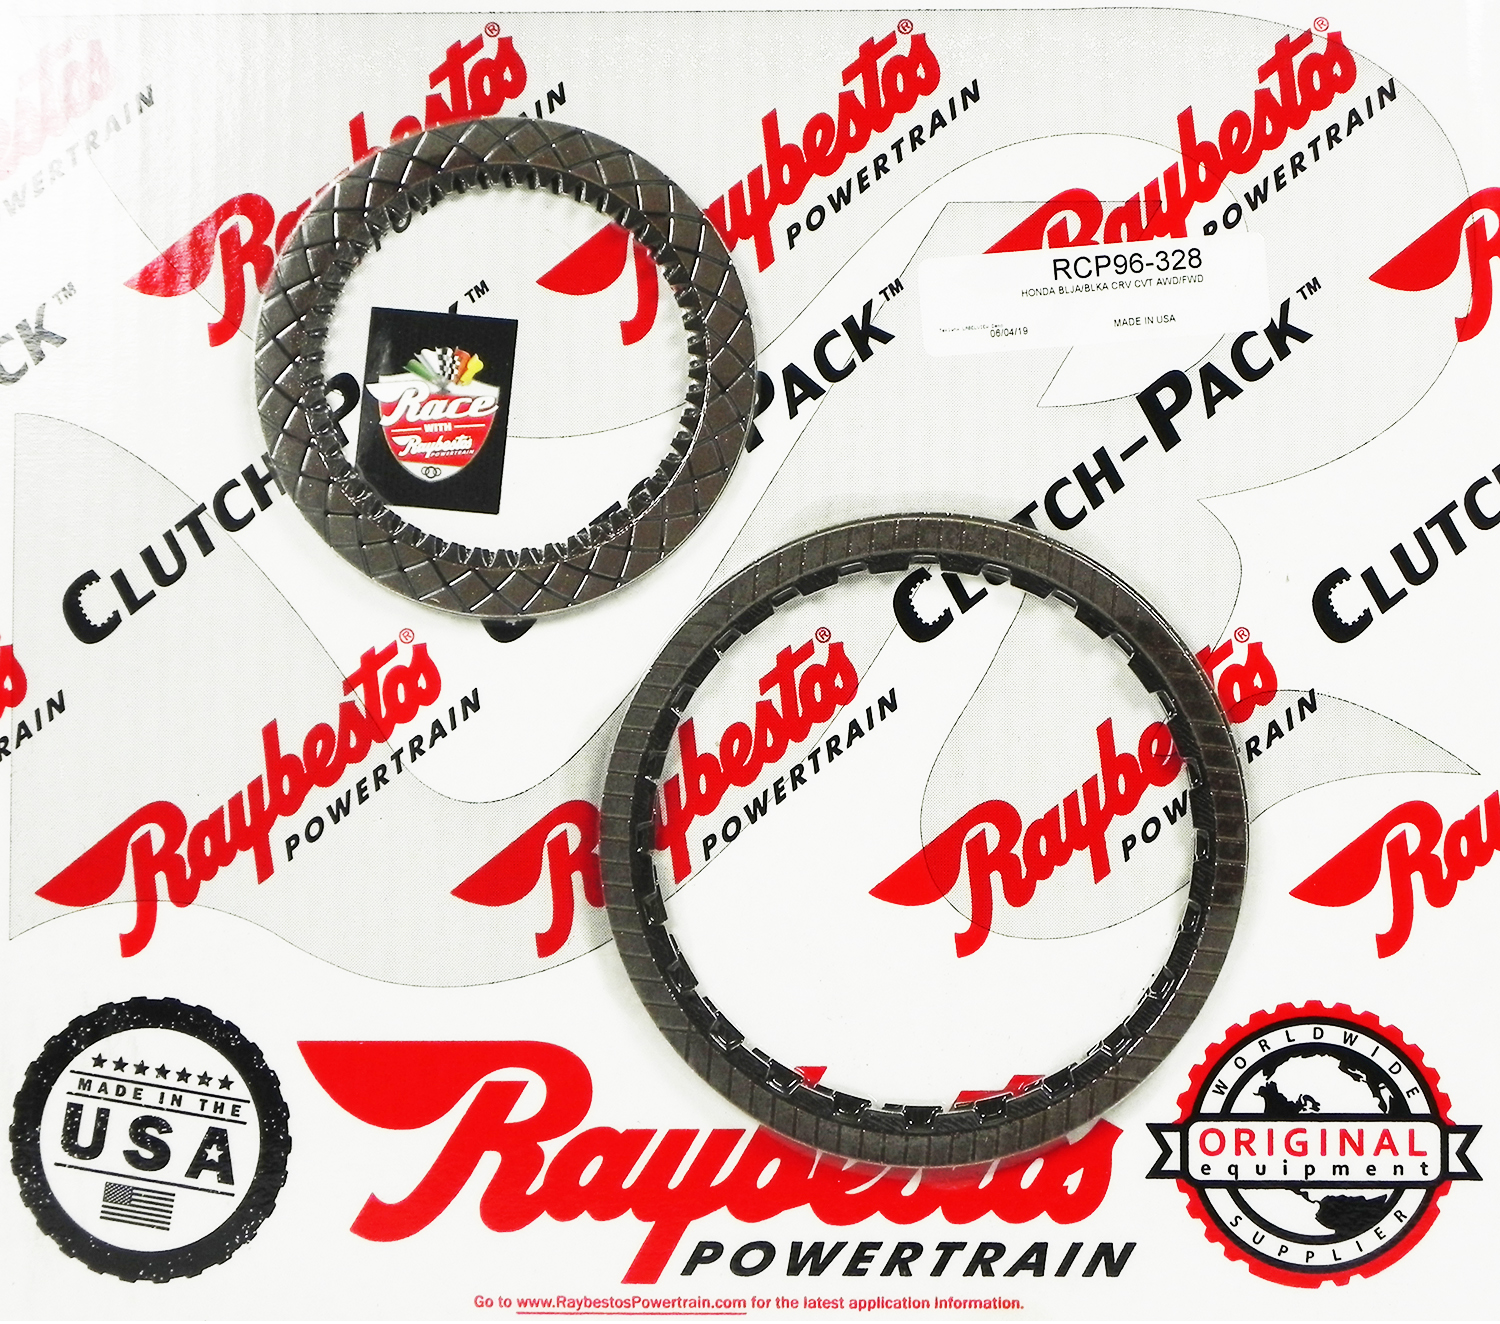 RCP96-328 | 2015-2016 GPX Friction Clutch Pack Module